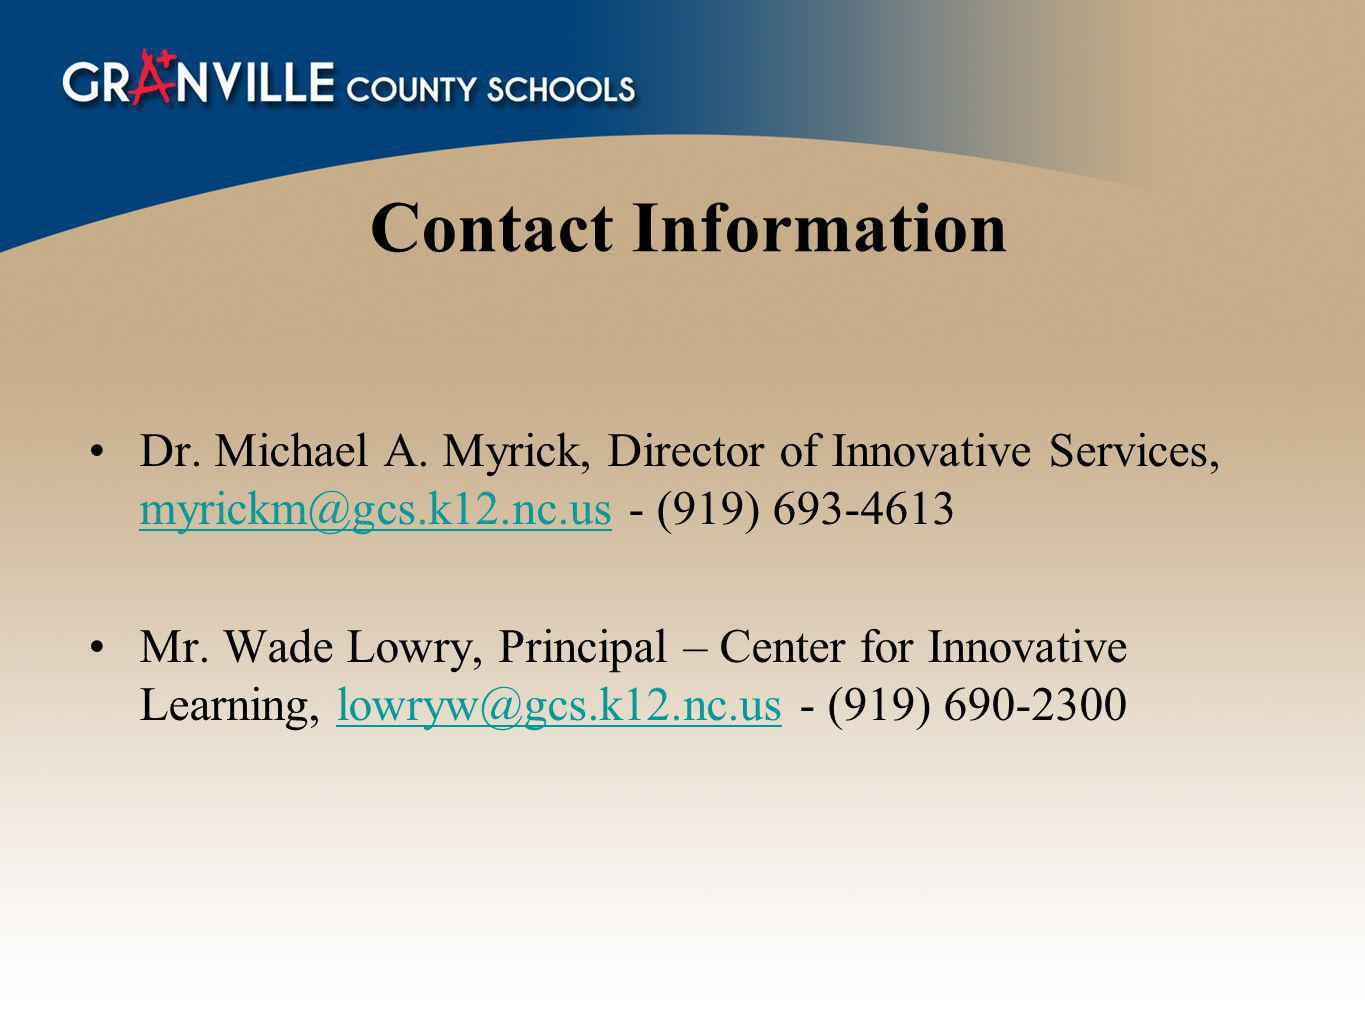 Contact Information Dr. Michael A. Myrick, Director of Innovative Services, myrickm@gcs.k12.nc.us - (919) 693-4613.